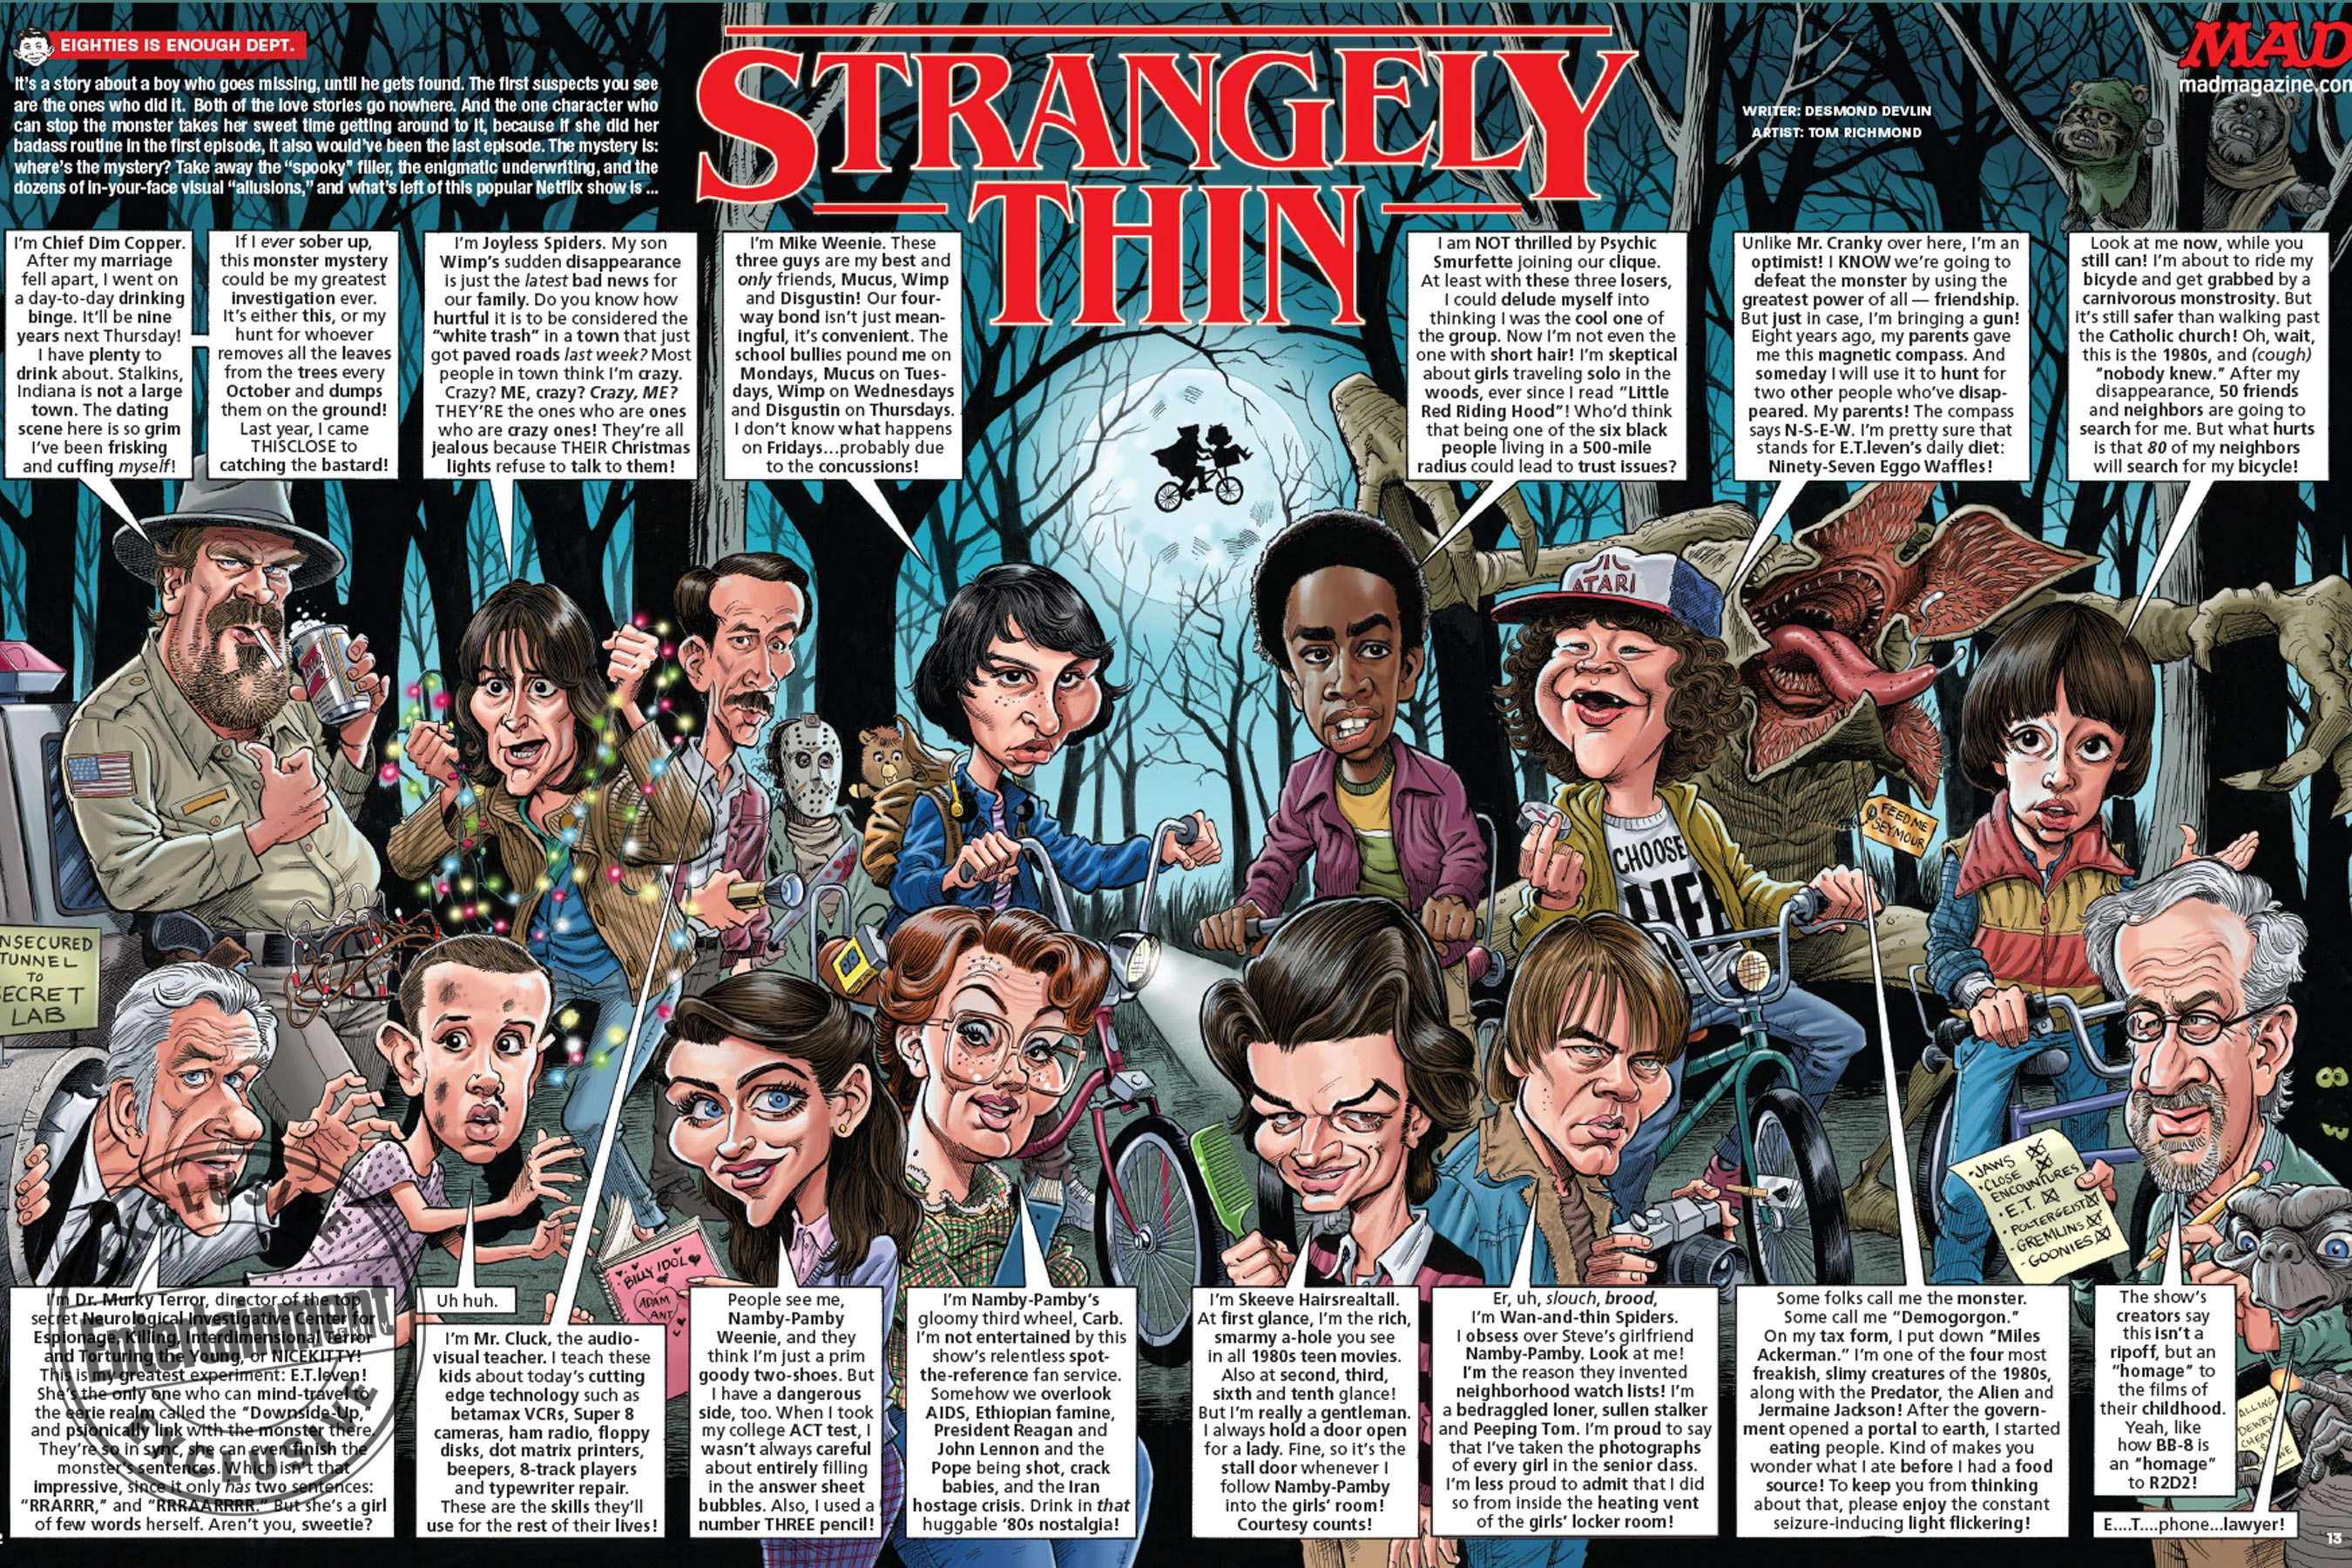 Stranger Things at Mad Magazine